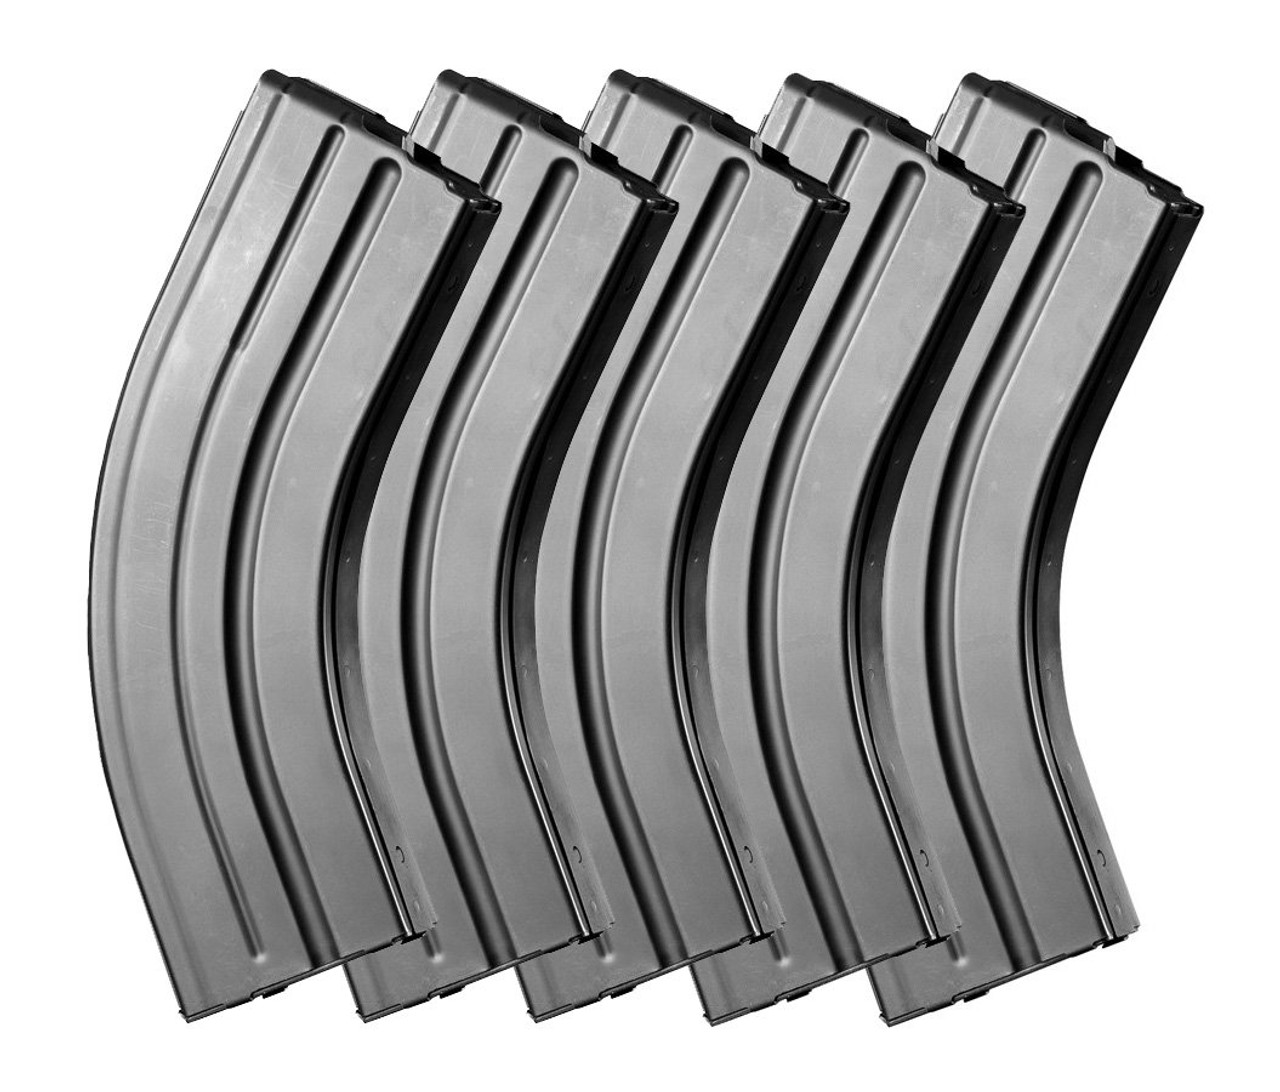 C Products Defense 30 Round Magazine 7.62 x 39 5 Pack